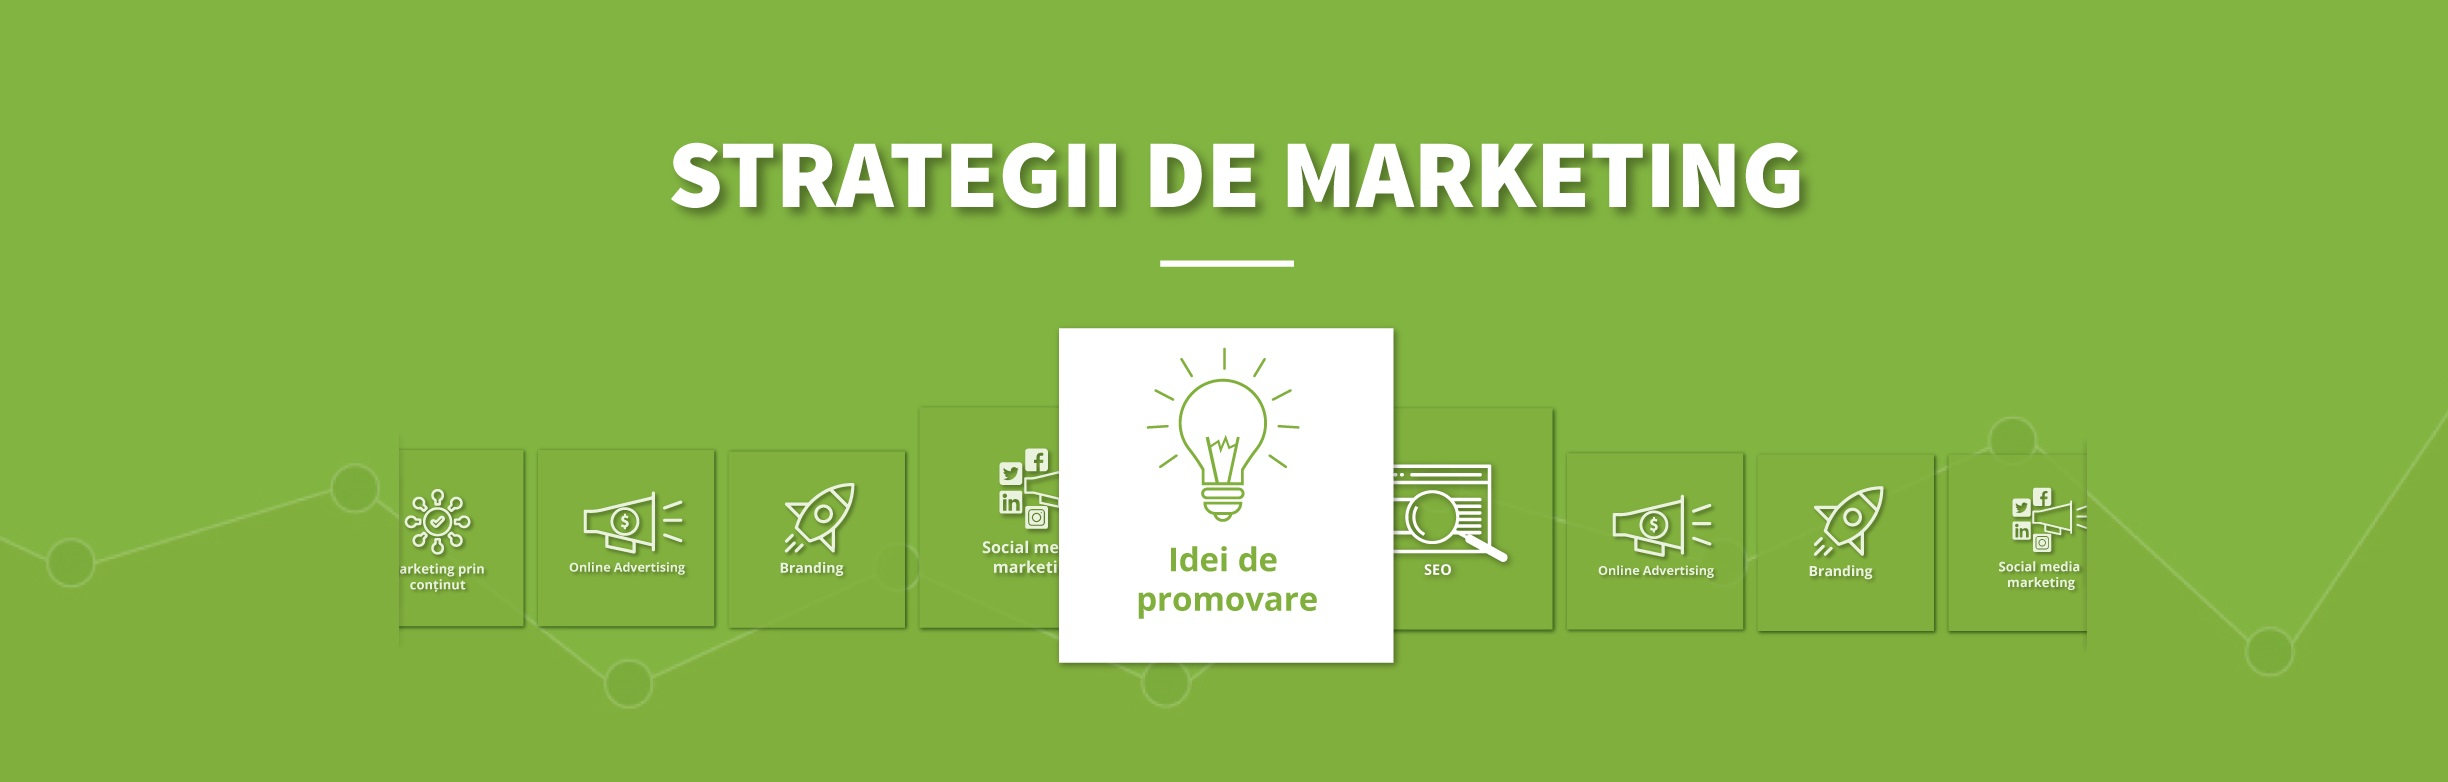 Strategii eficiente de marketing